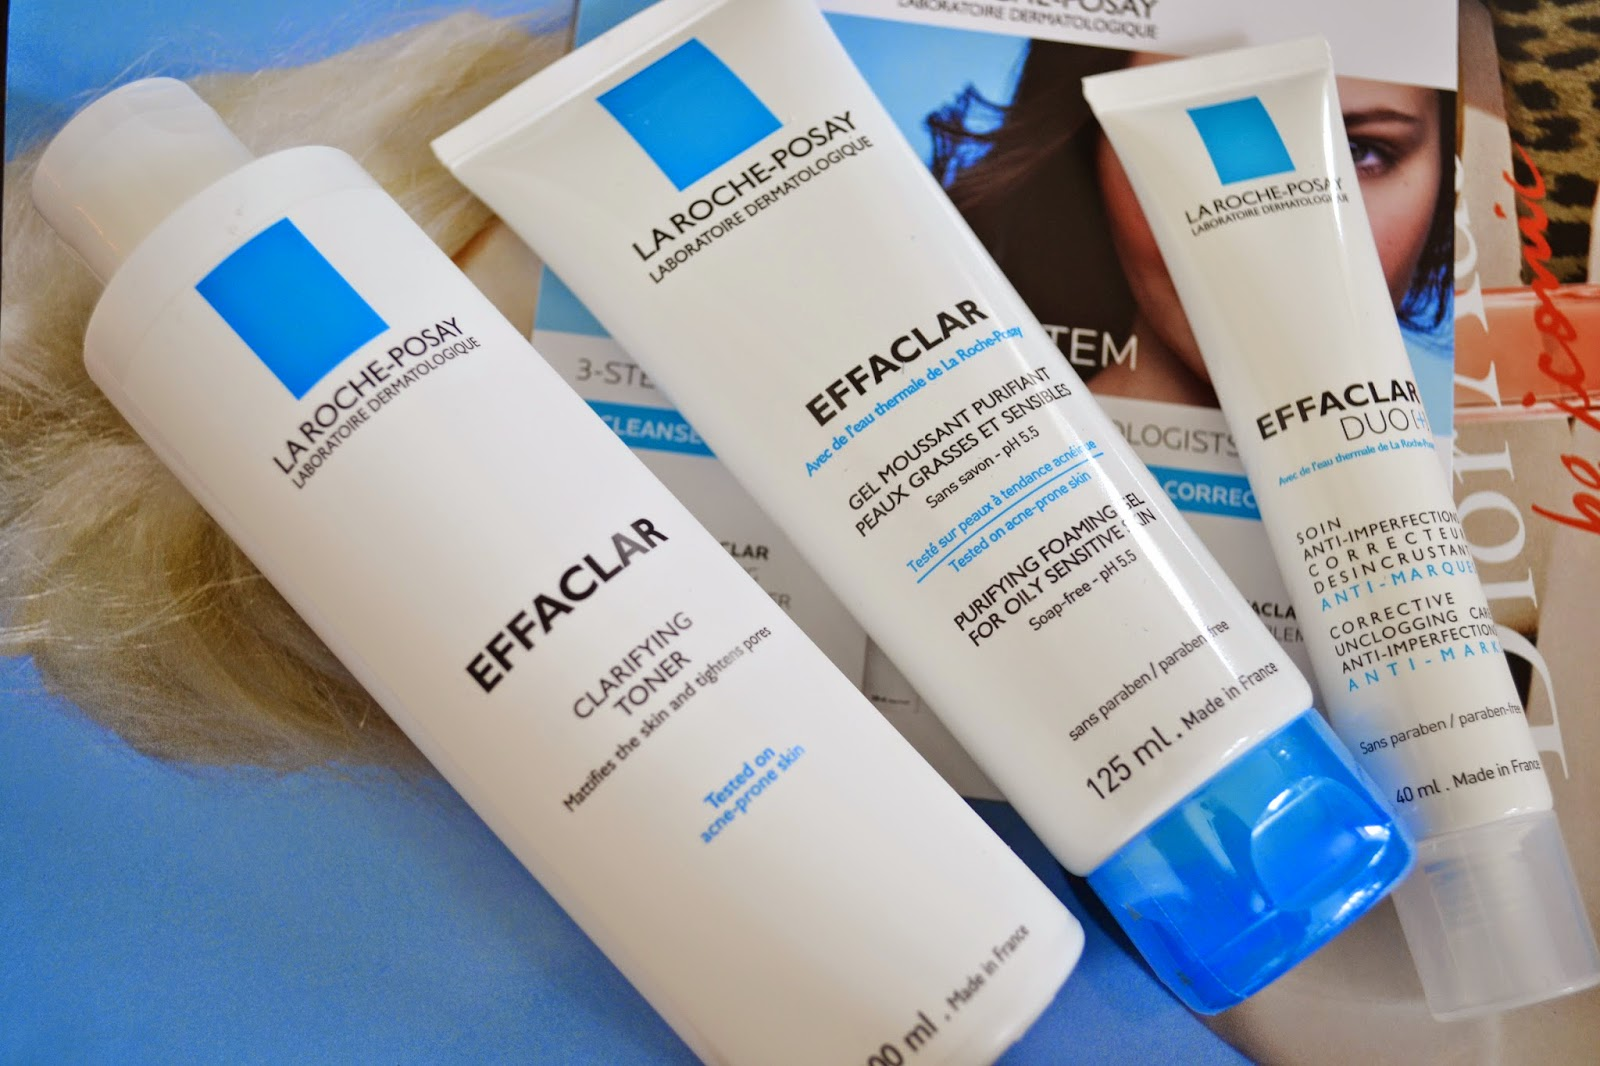 La Roche-Posay Effaclar 3-Step Anti-Blemish System Review - Aspiring Londoner